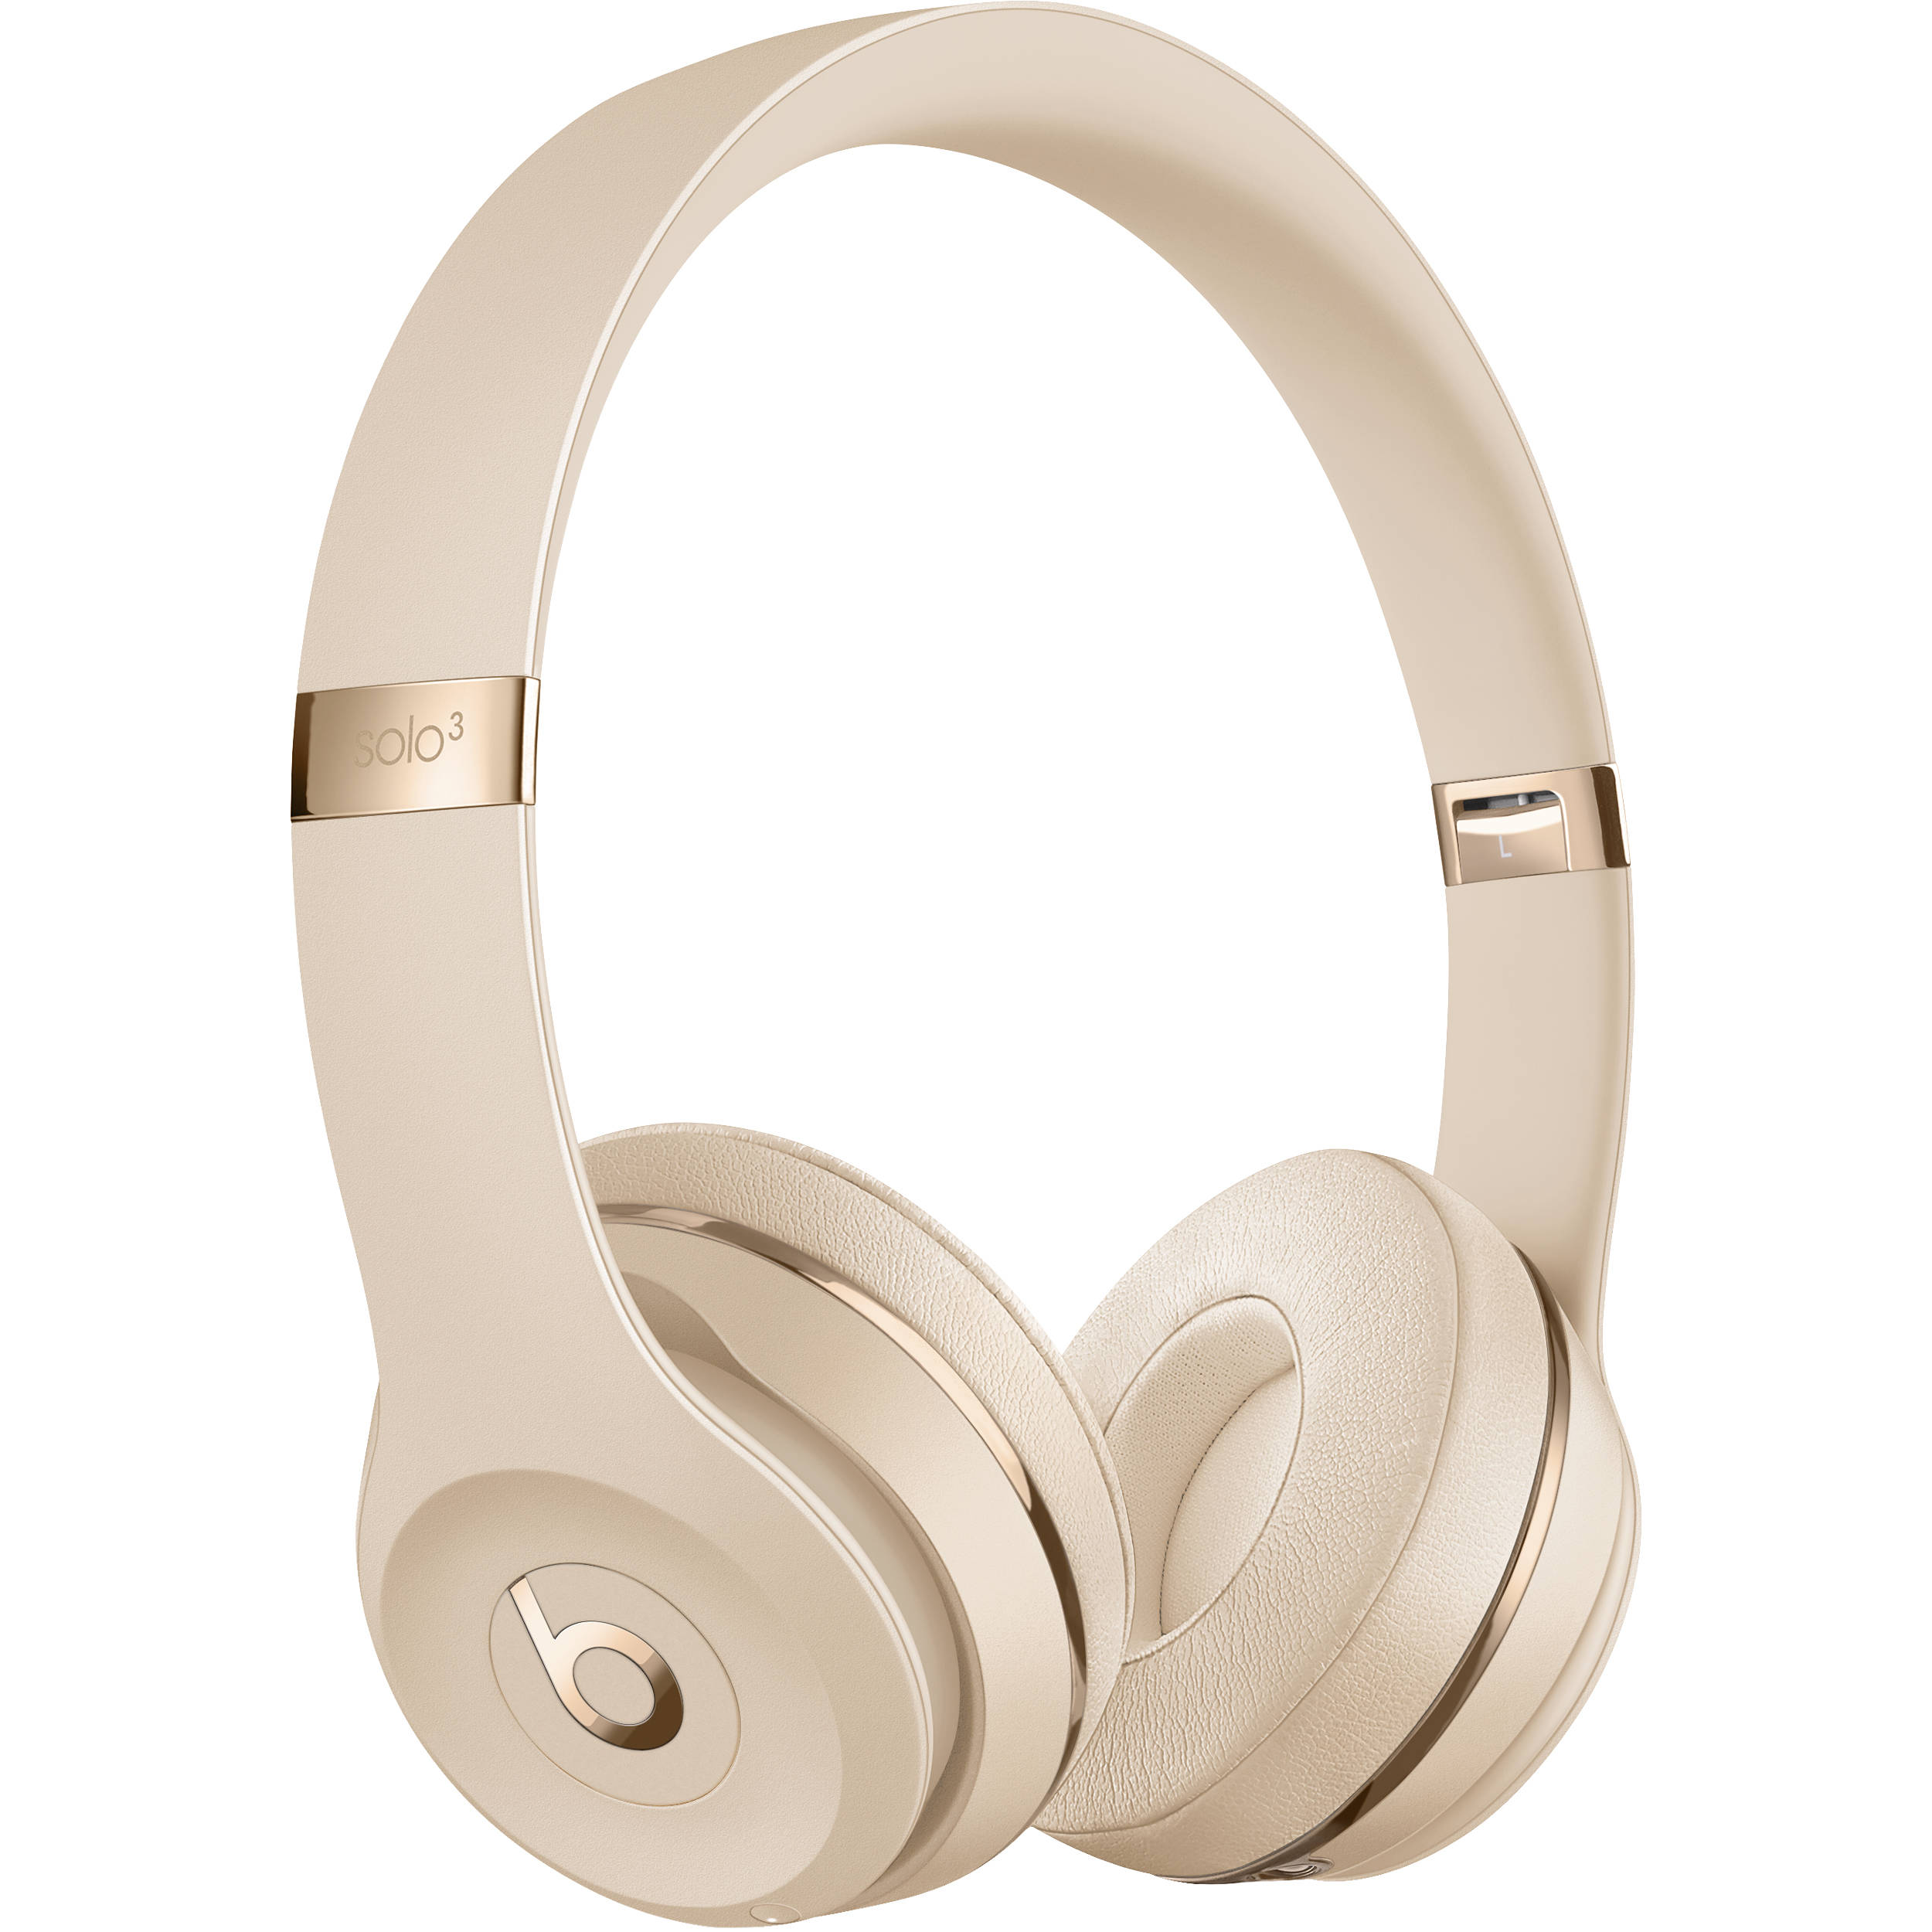 6e0bb0a944f Beats by Dr. Dre Beats Solo3 Wireless On-Ear Headphones (Satin Gold